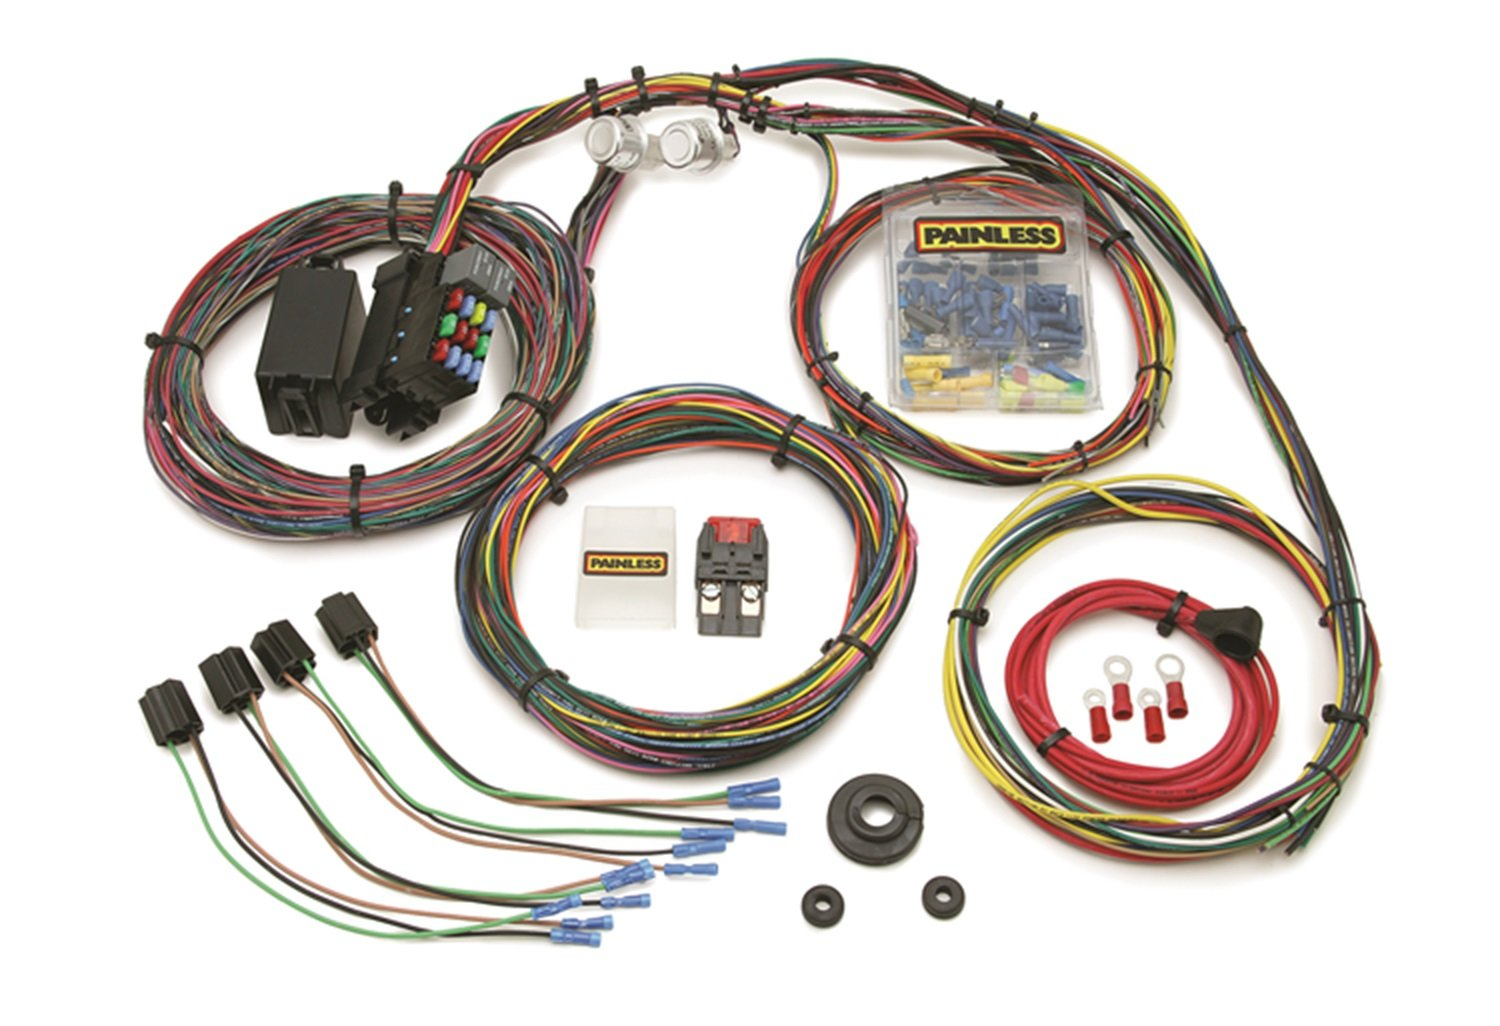 71gWOH5D5zL._SL1500_ amazon com painless 10127 automotive painless wiring harness rebate at cos-gaming.co